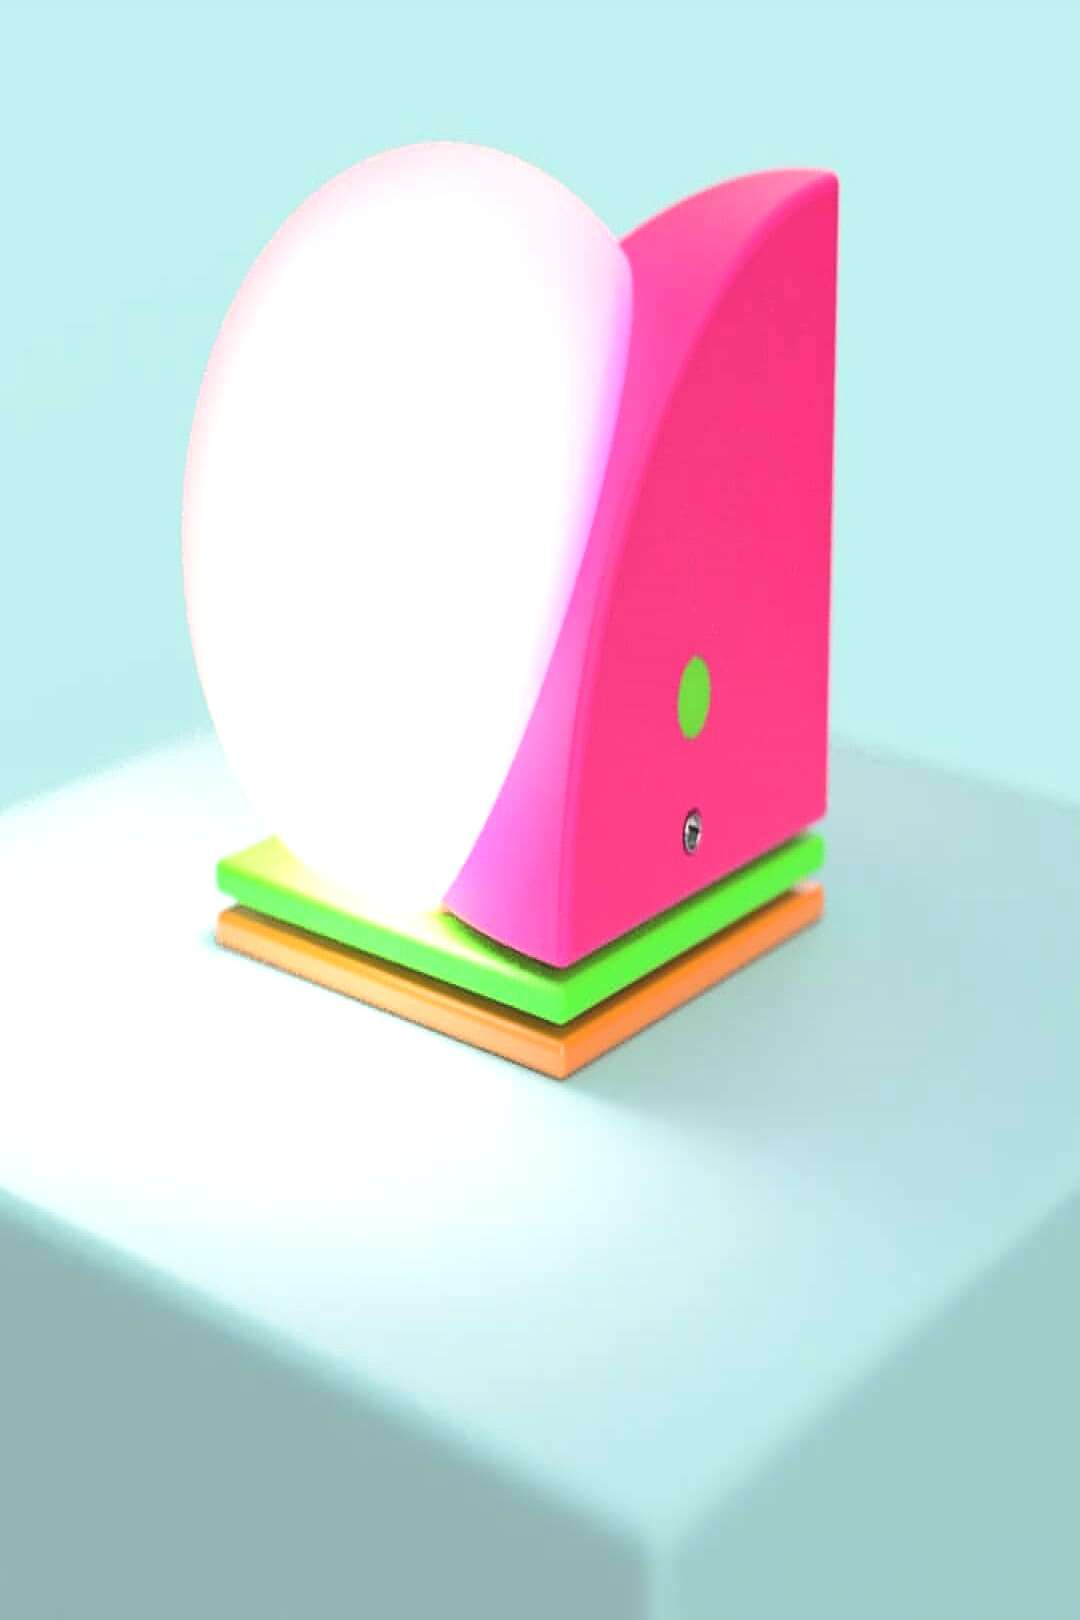 A colorfully lamp build out of basic geometry